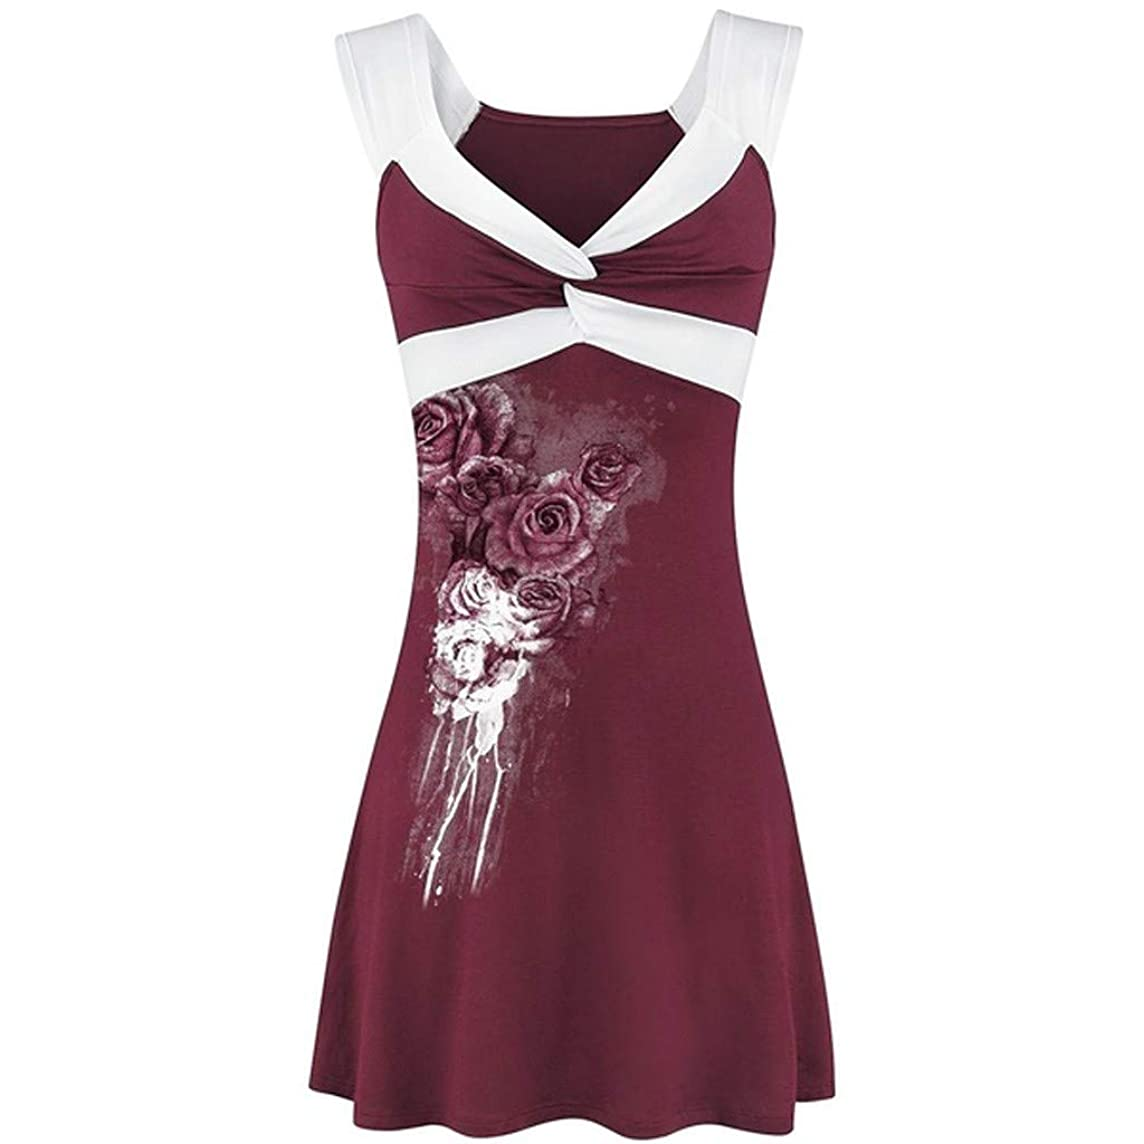 Sunhusing Women's Print Patchwork Sleeveless Vest Top Twist Knotted Wrapped Pleated Shirt